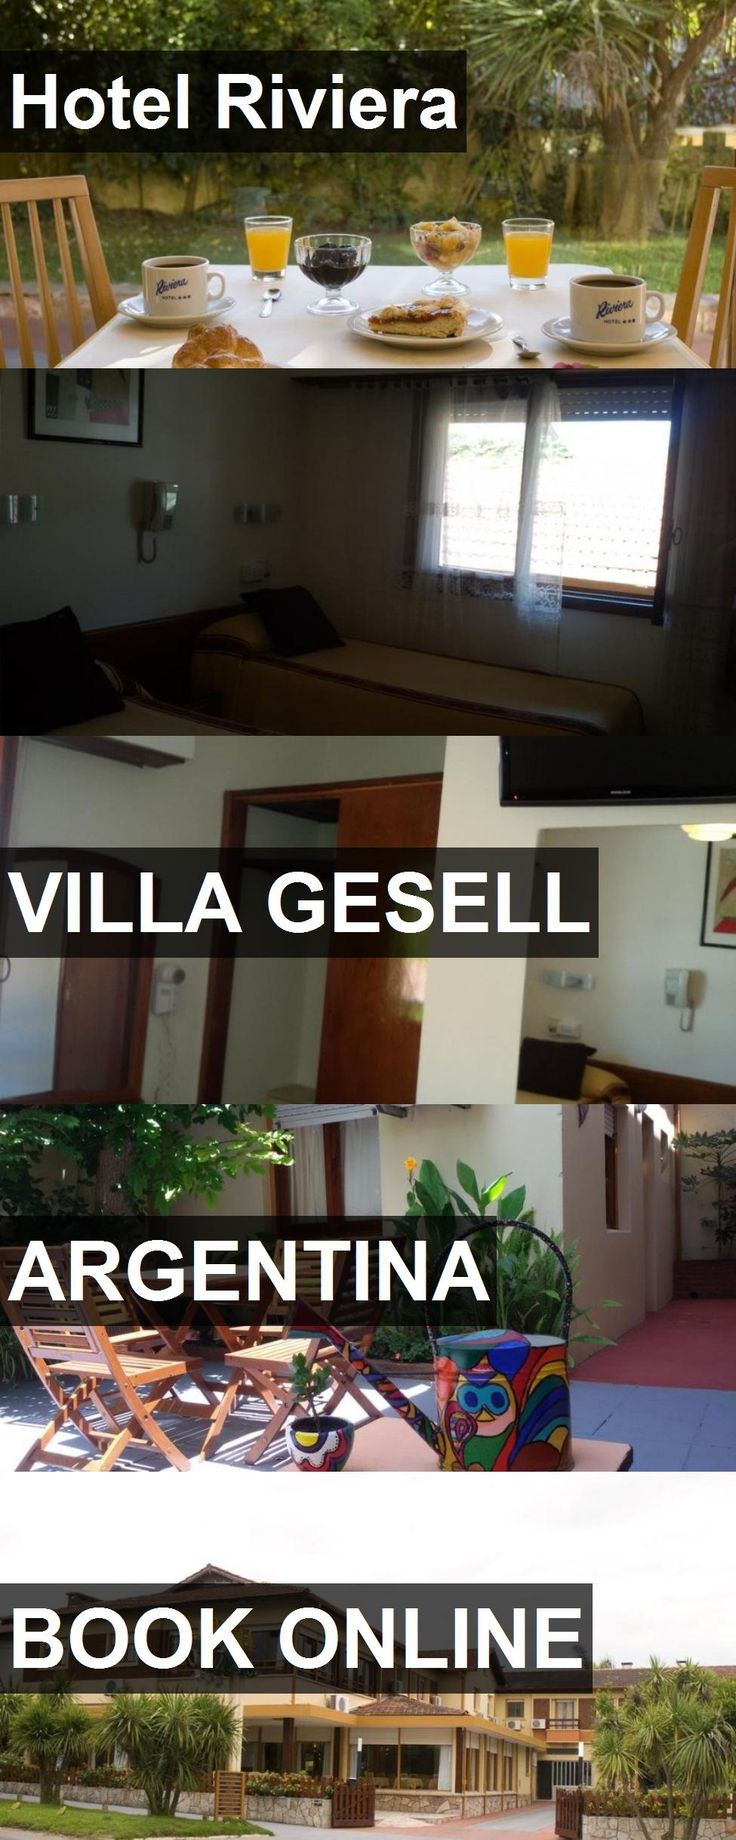 Hotel Riviera in Villa Gesell, Argentina. For more information, photos, reviews and best prices please follow the link. #Argentina #VillaGesell #travel #vacation #hotel